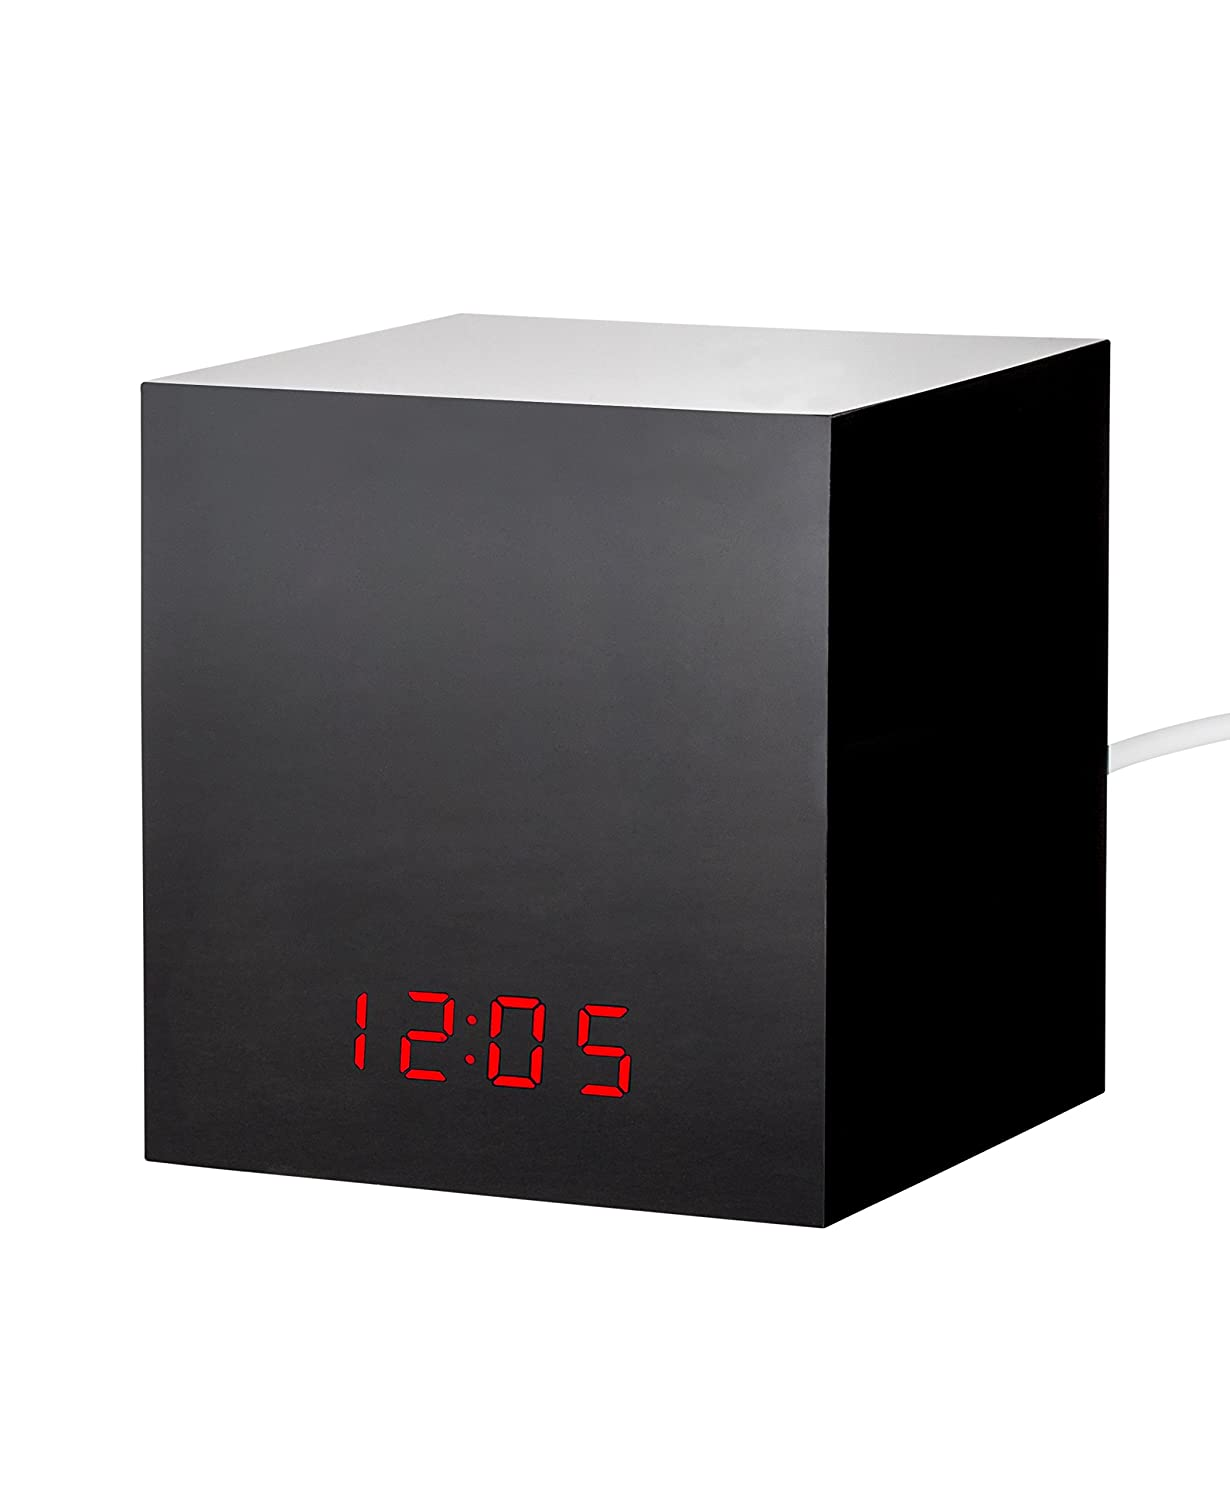 Black Box LED Clock to Hide Your Nest Cam/Dropcam Turn Your Nest Cam/Dropcam Into a Spy Camera - For Nest Cam and Dropcam PRO Dropcessories 604697978514